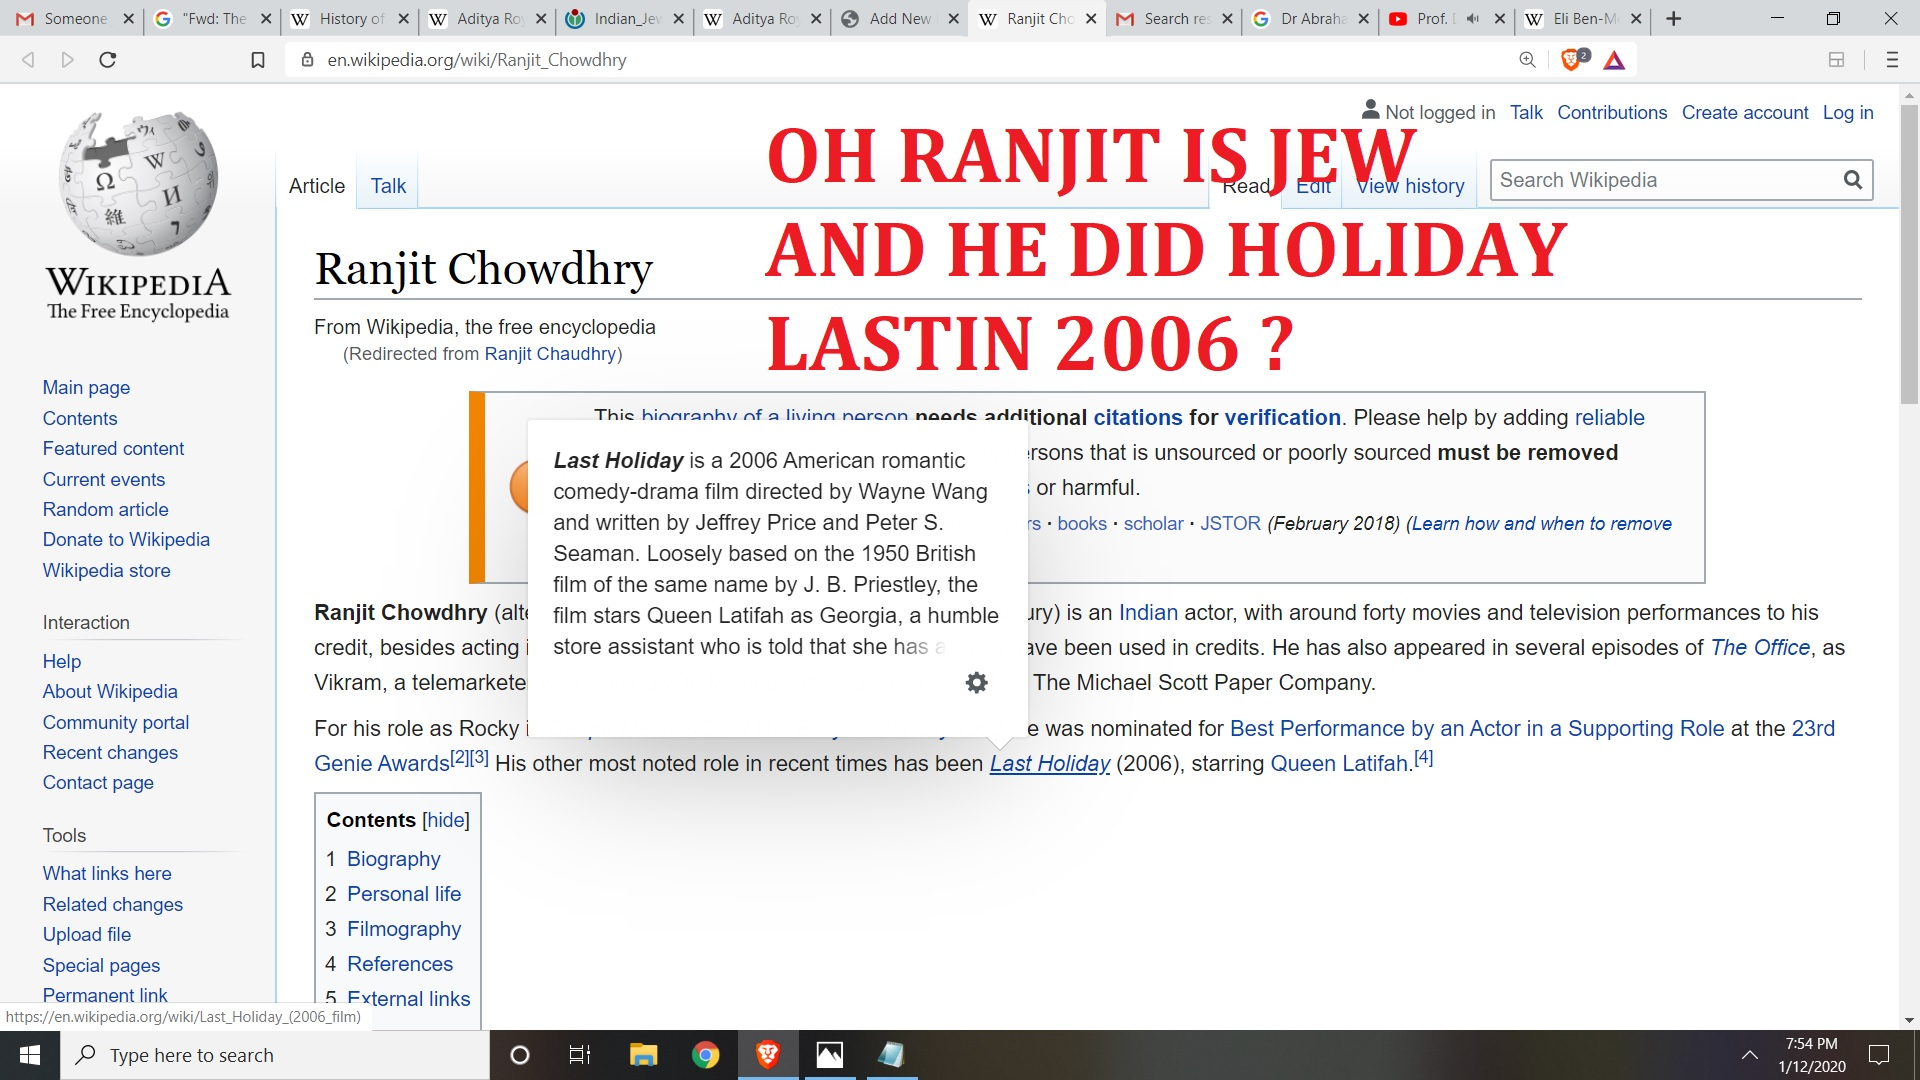 RANJIT CHAUDHRY LAST HOLDIAY 2006 IS INDIAN JEW